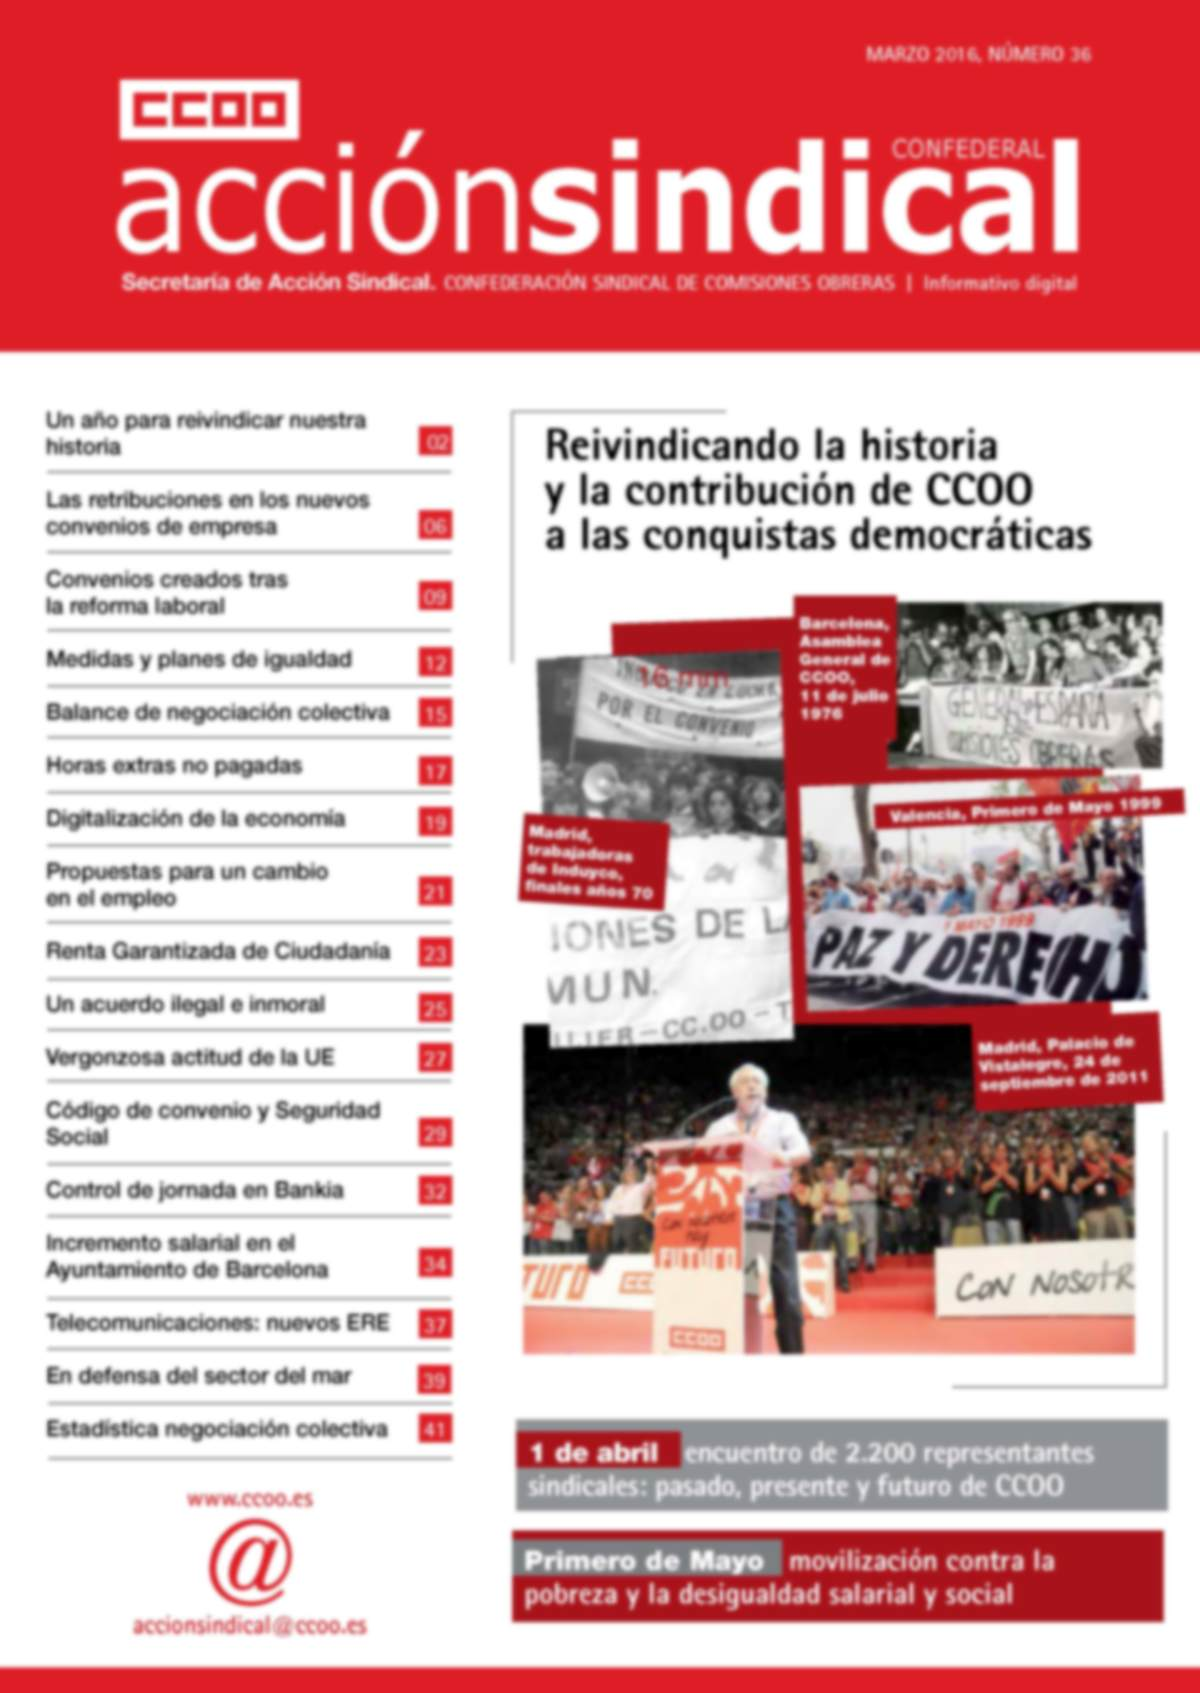 Revista de Acción Sindical Confederal, nº 36